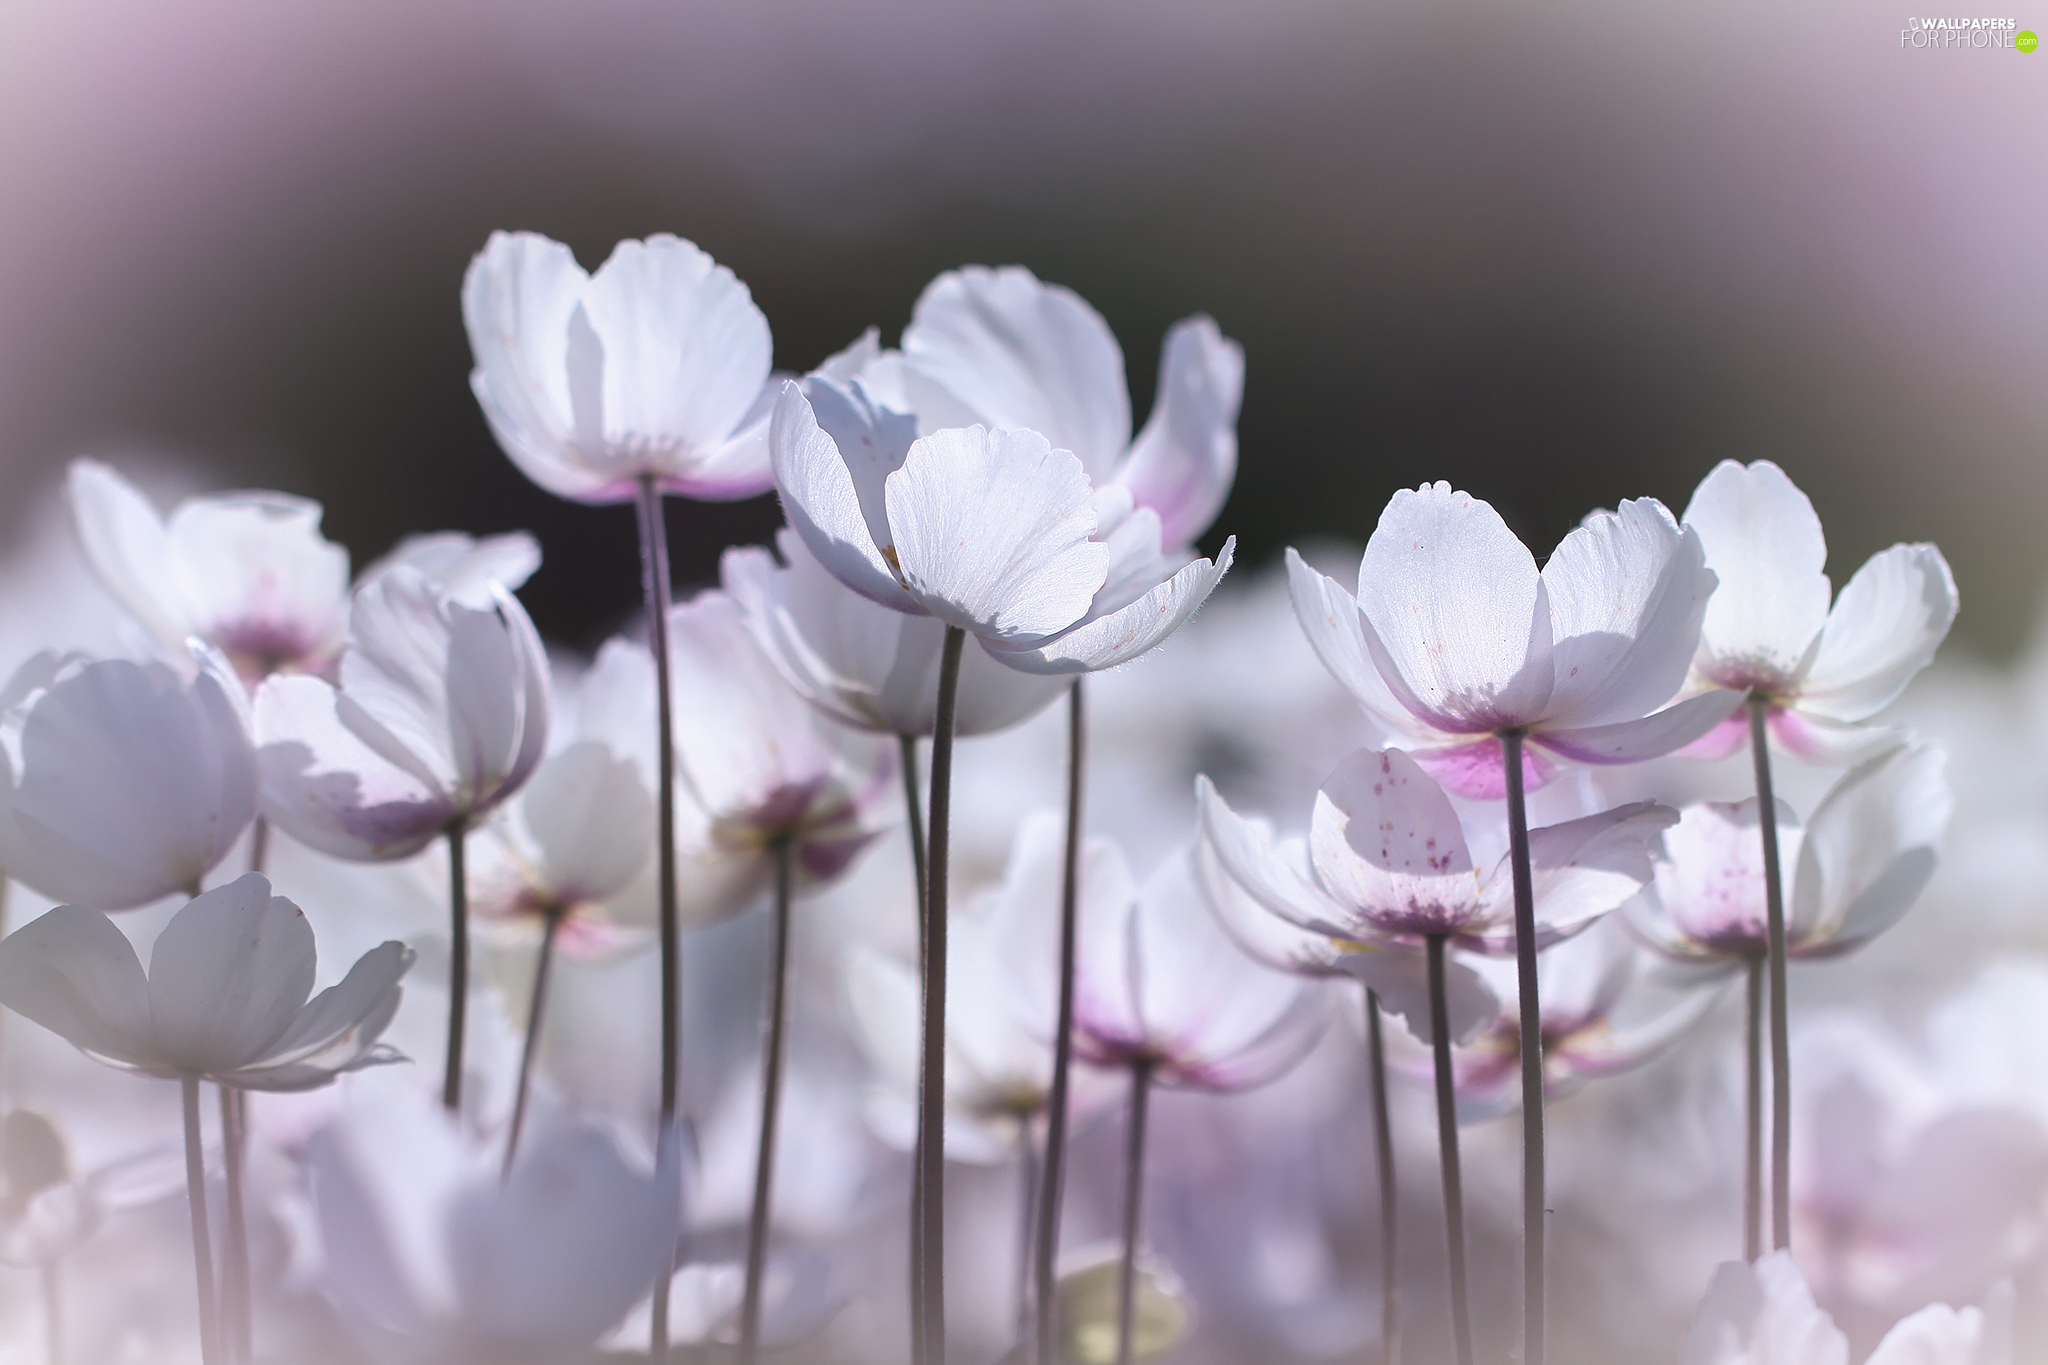 White, forester, Flowers, Poppy Anemone